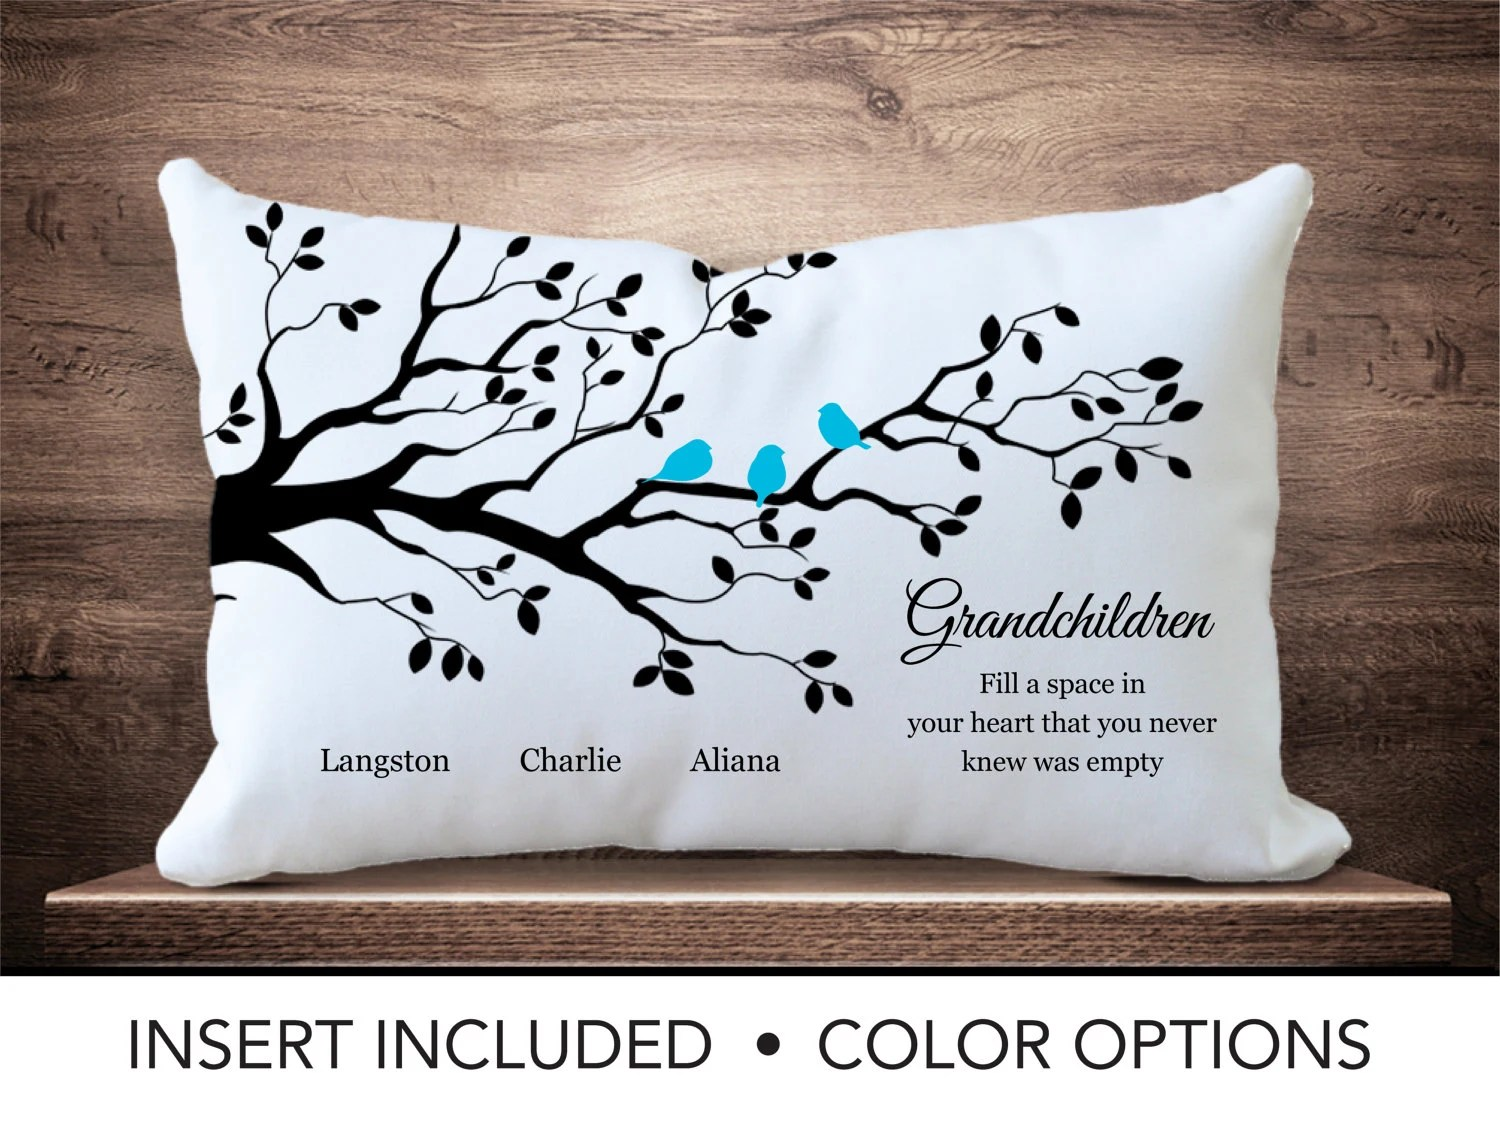 Calm Children Family Tree Pillow Personalized Parent Gift Mabirthday Mor Gifts Ma Tree Children Children Family Tree Pillow Personalized Parent Gift gifts Gifts For Grandma